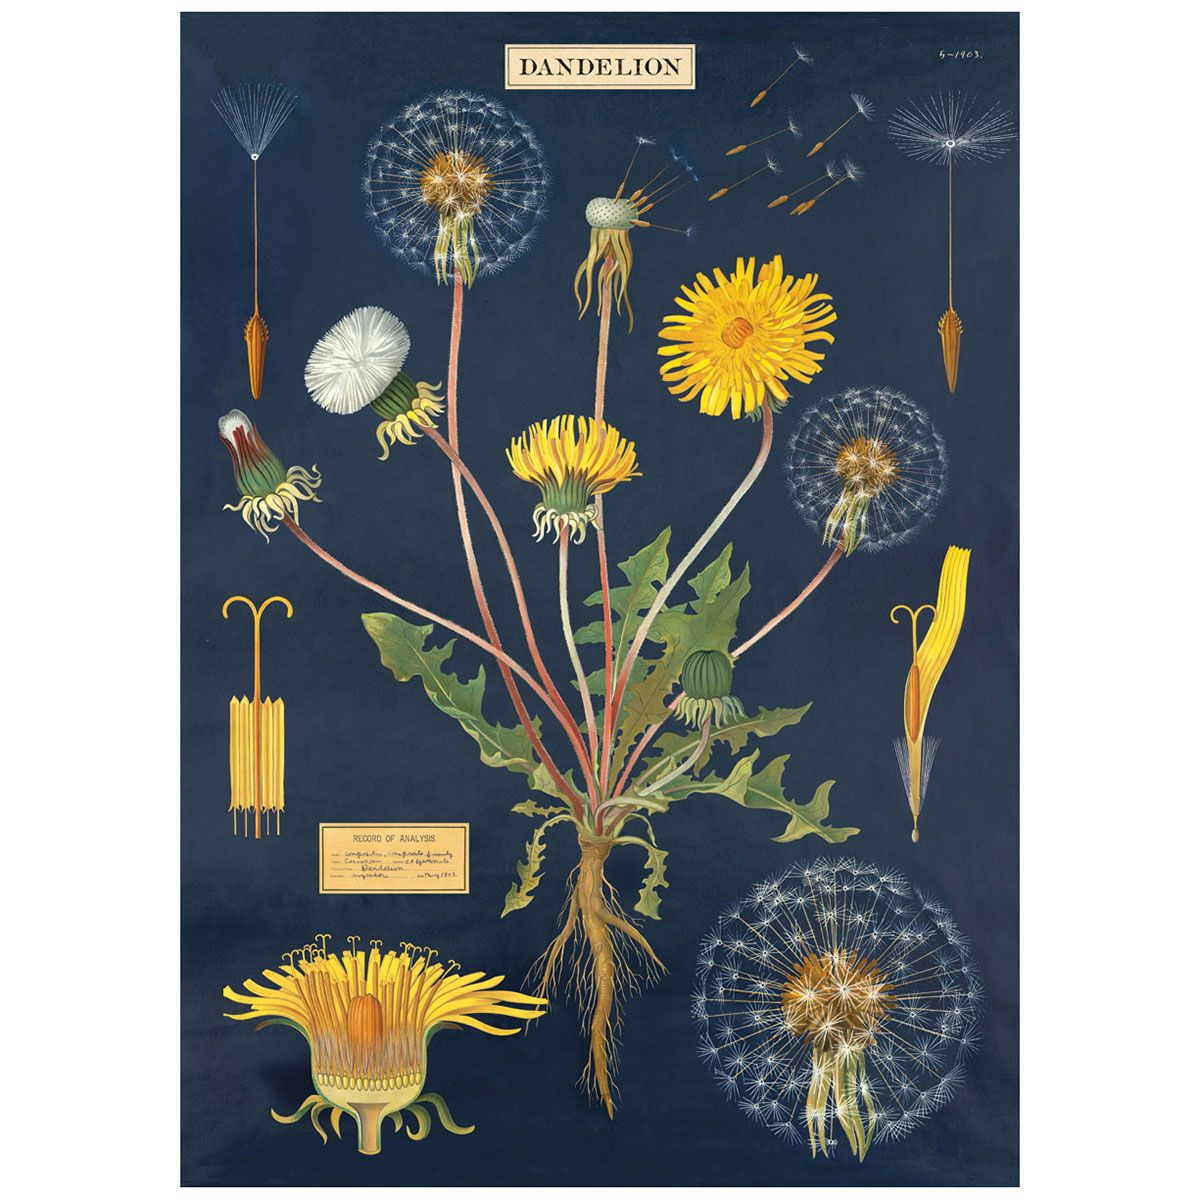 I Designed A Vintage Looking Border Art For You To Use In: Dandelion Plant Chart Vintage Style Poster In 2019